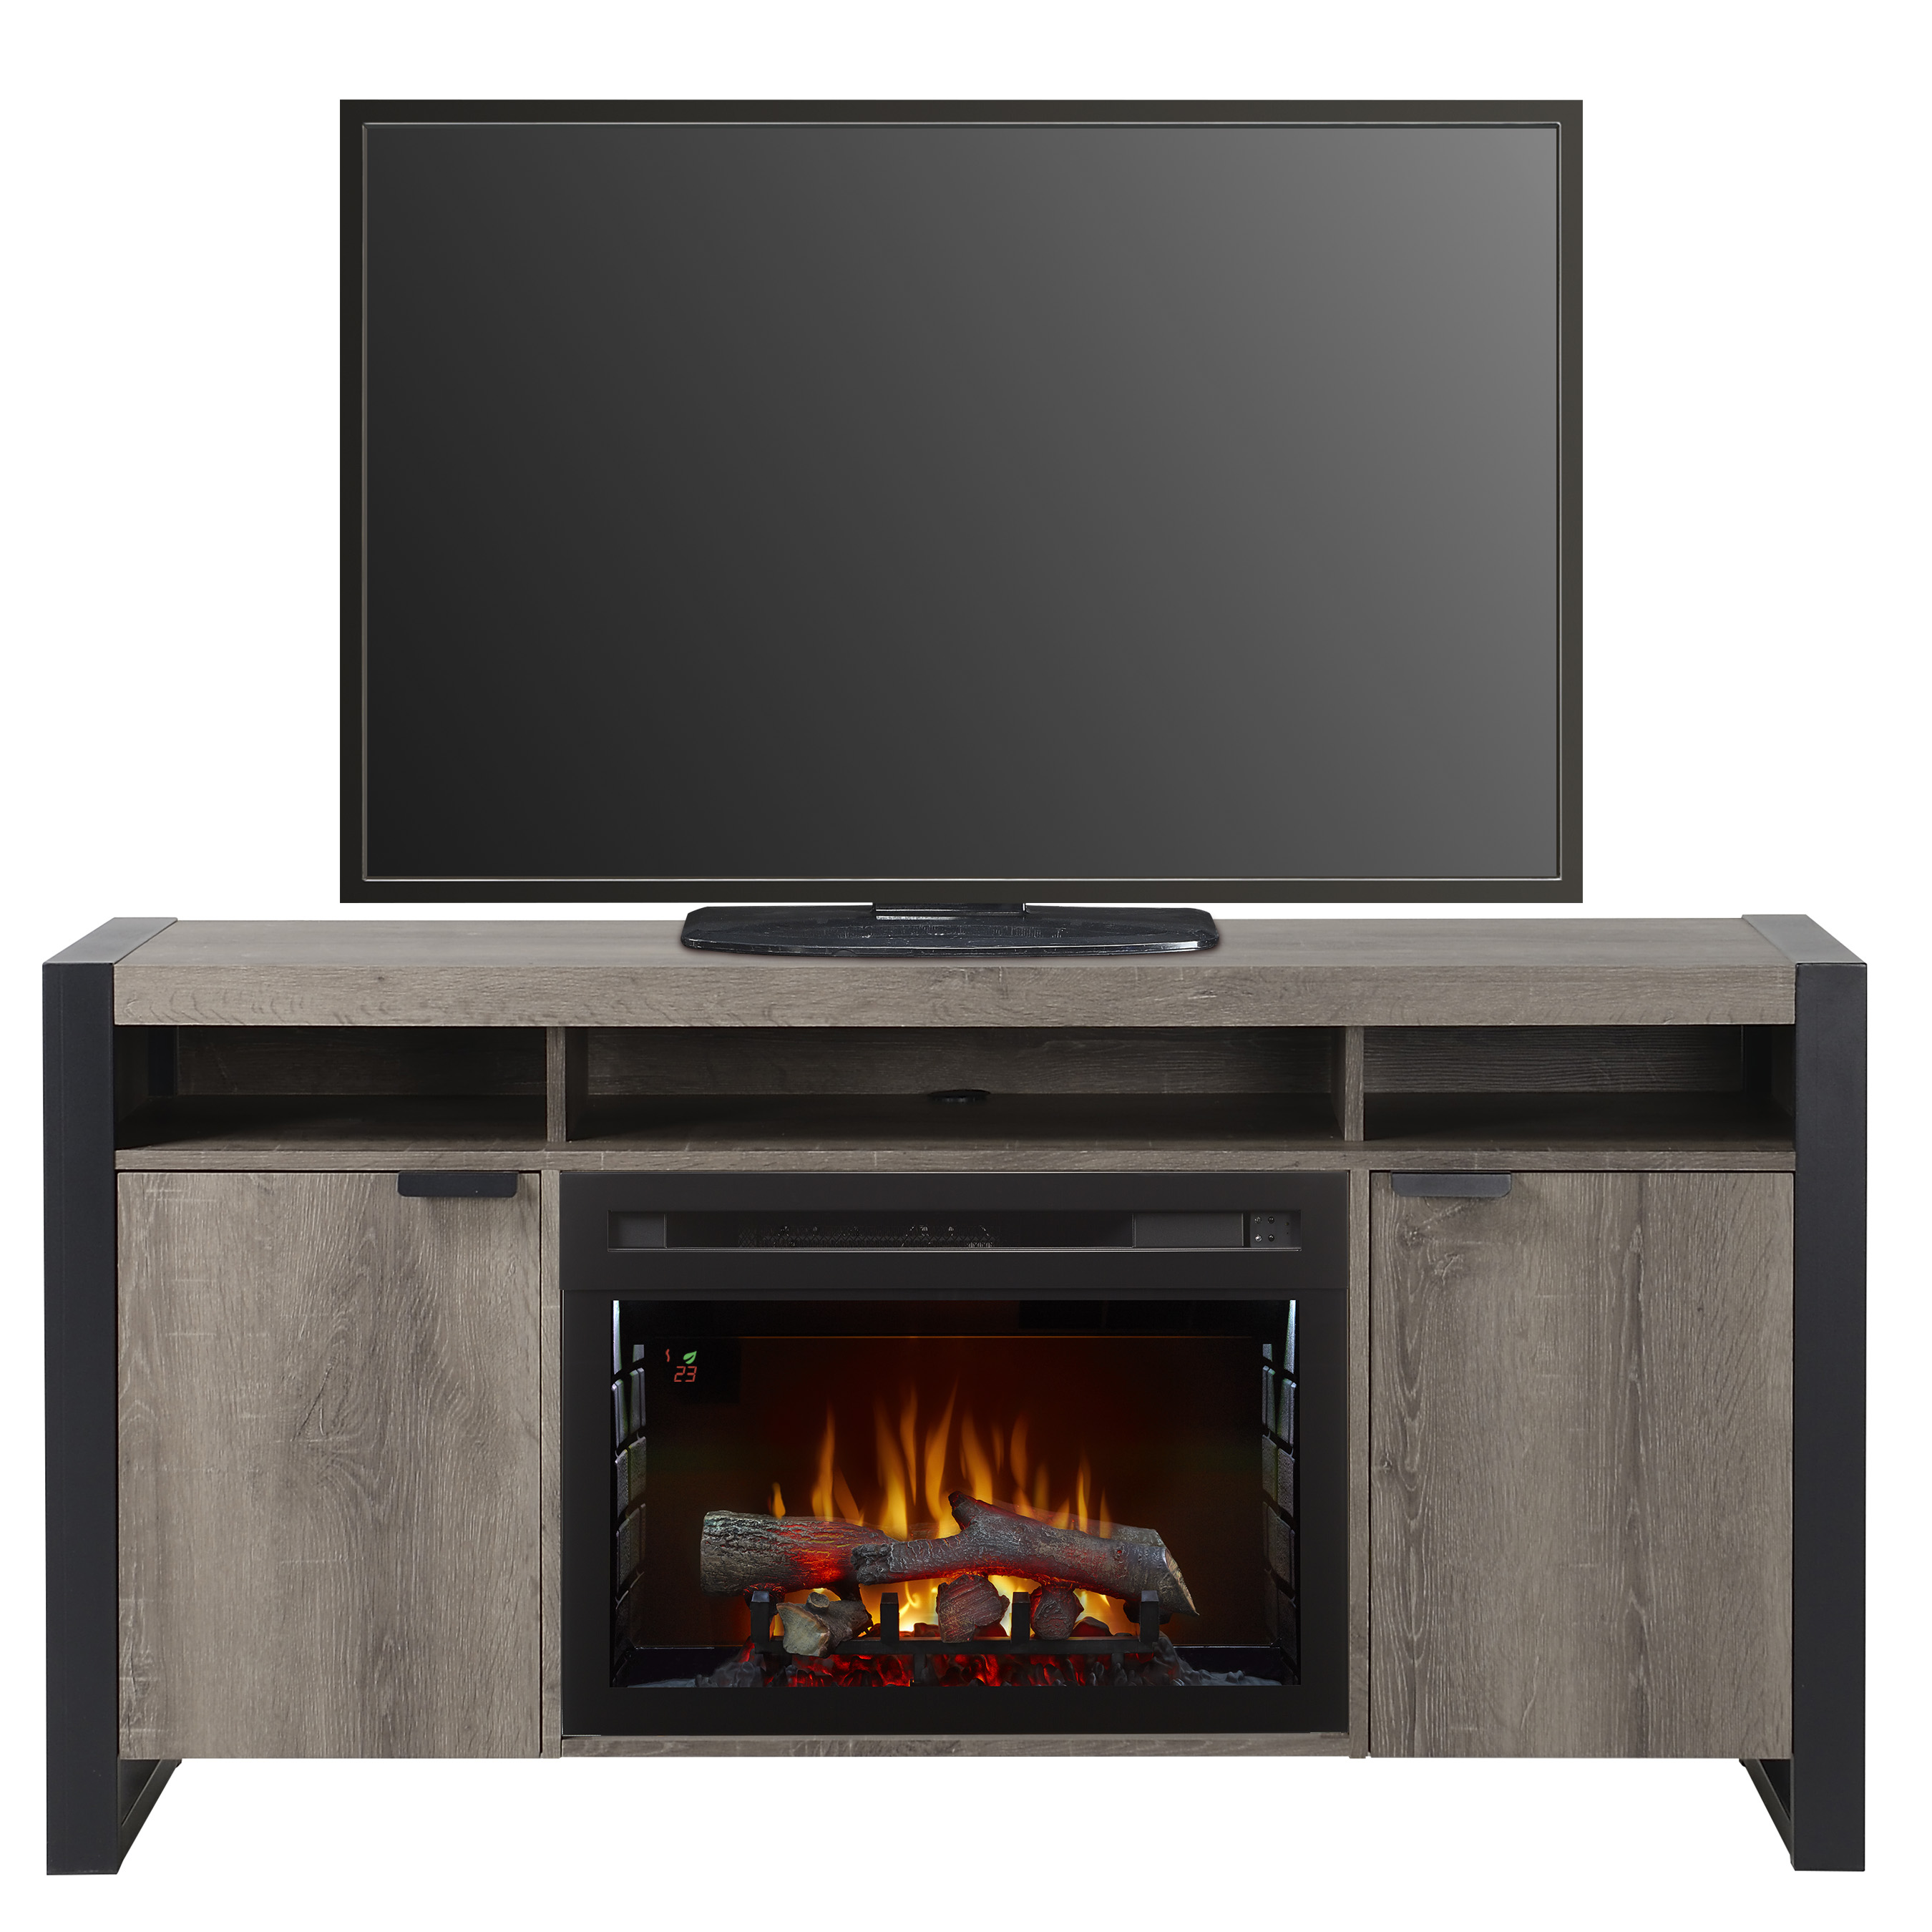 shore black barrier digital fireplaces gemco vector safety premium edmonton fireplace logs fire birch